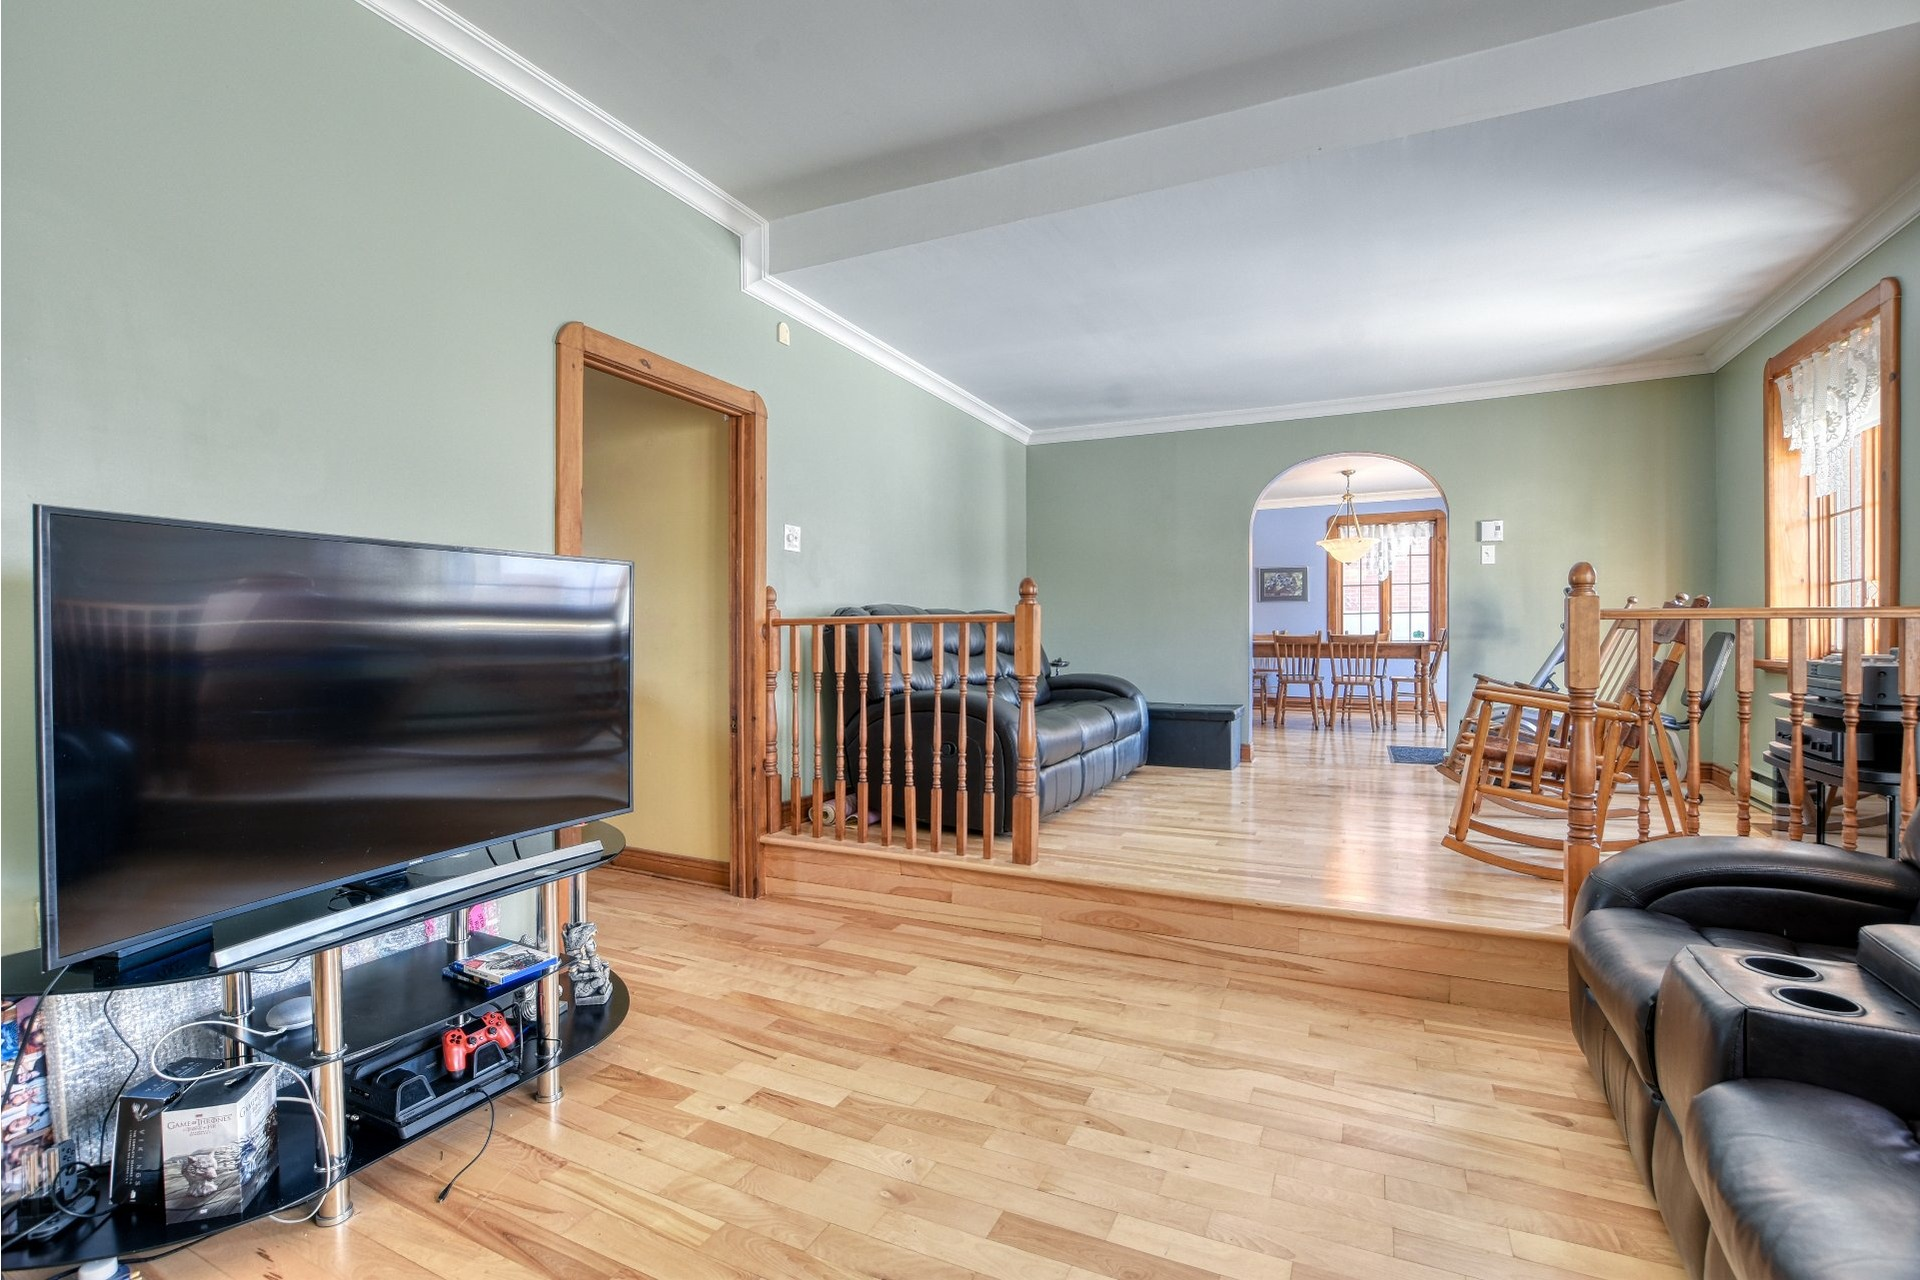 image 9 - House For sale Saint-Laurent Montréal  - 10 rooms